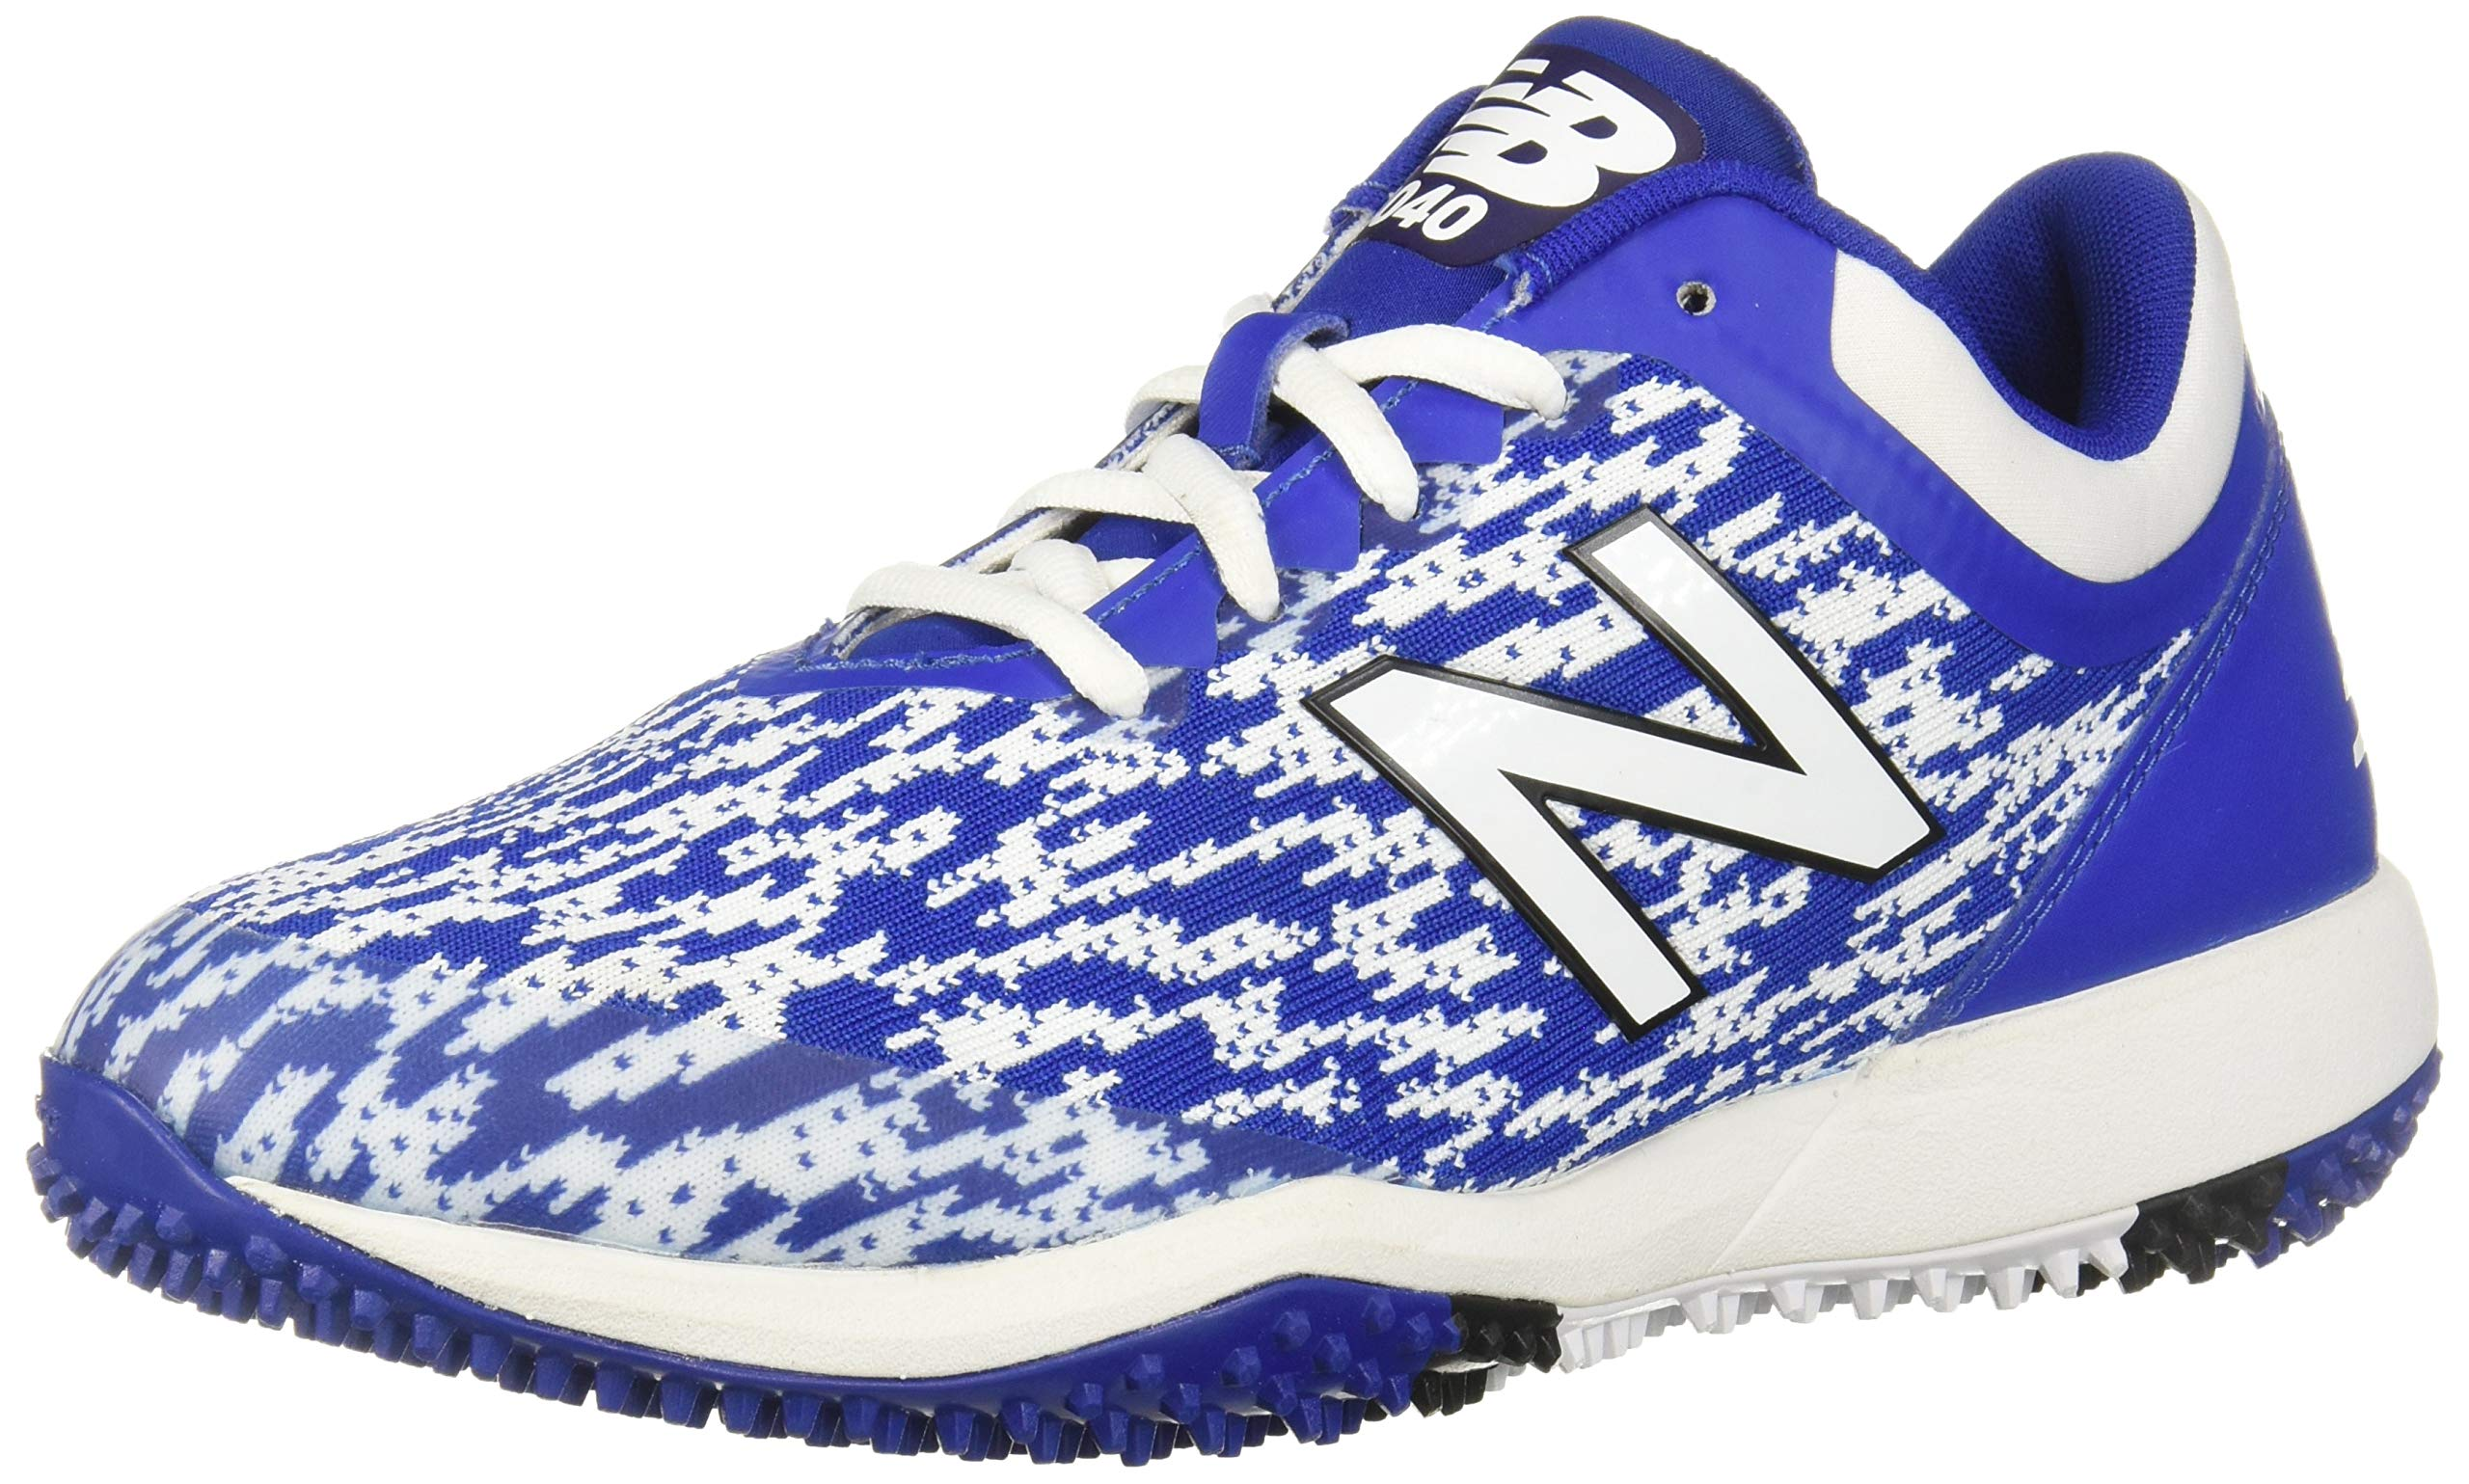 New Balance Men's 4040v5 Turf Running Shoe, Black/Royal, 8 D US by New Balance